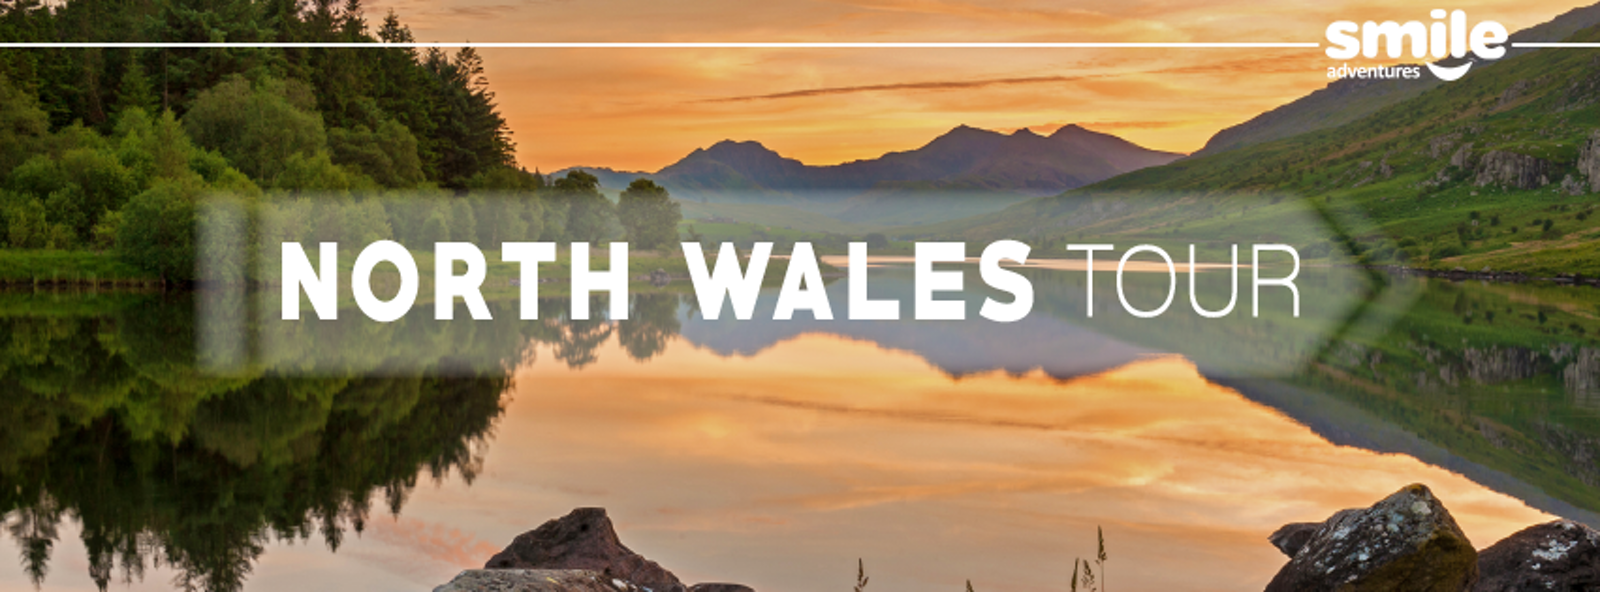 North Wales Tour – From Manchester